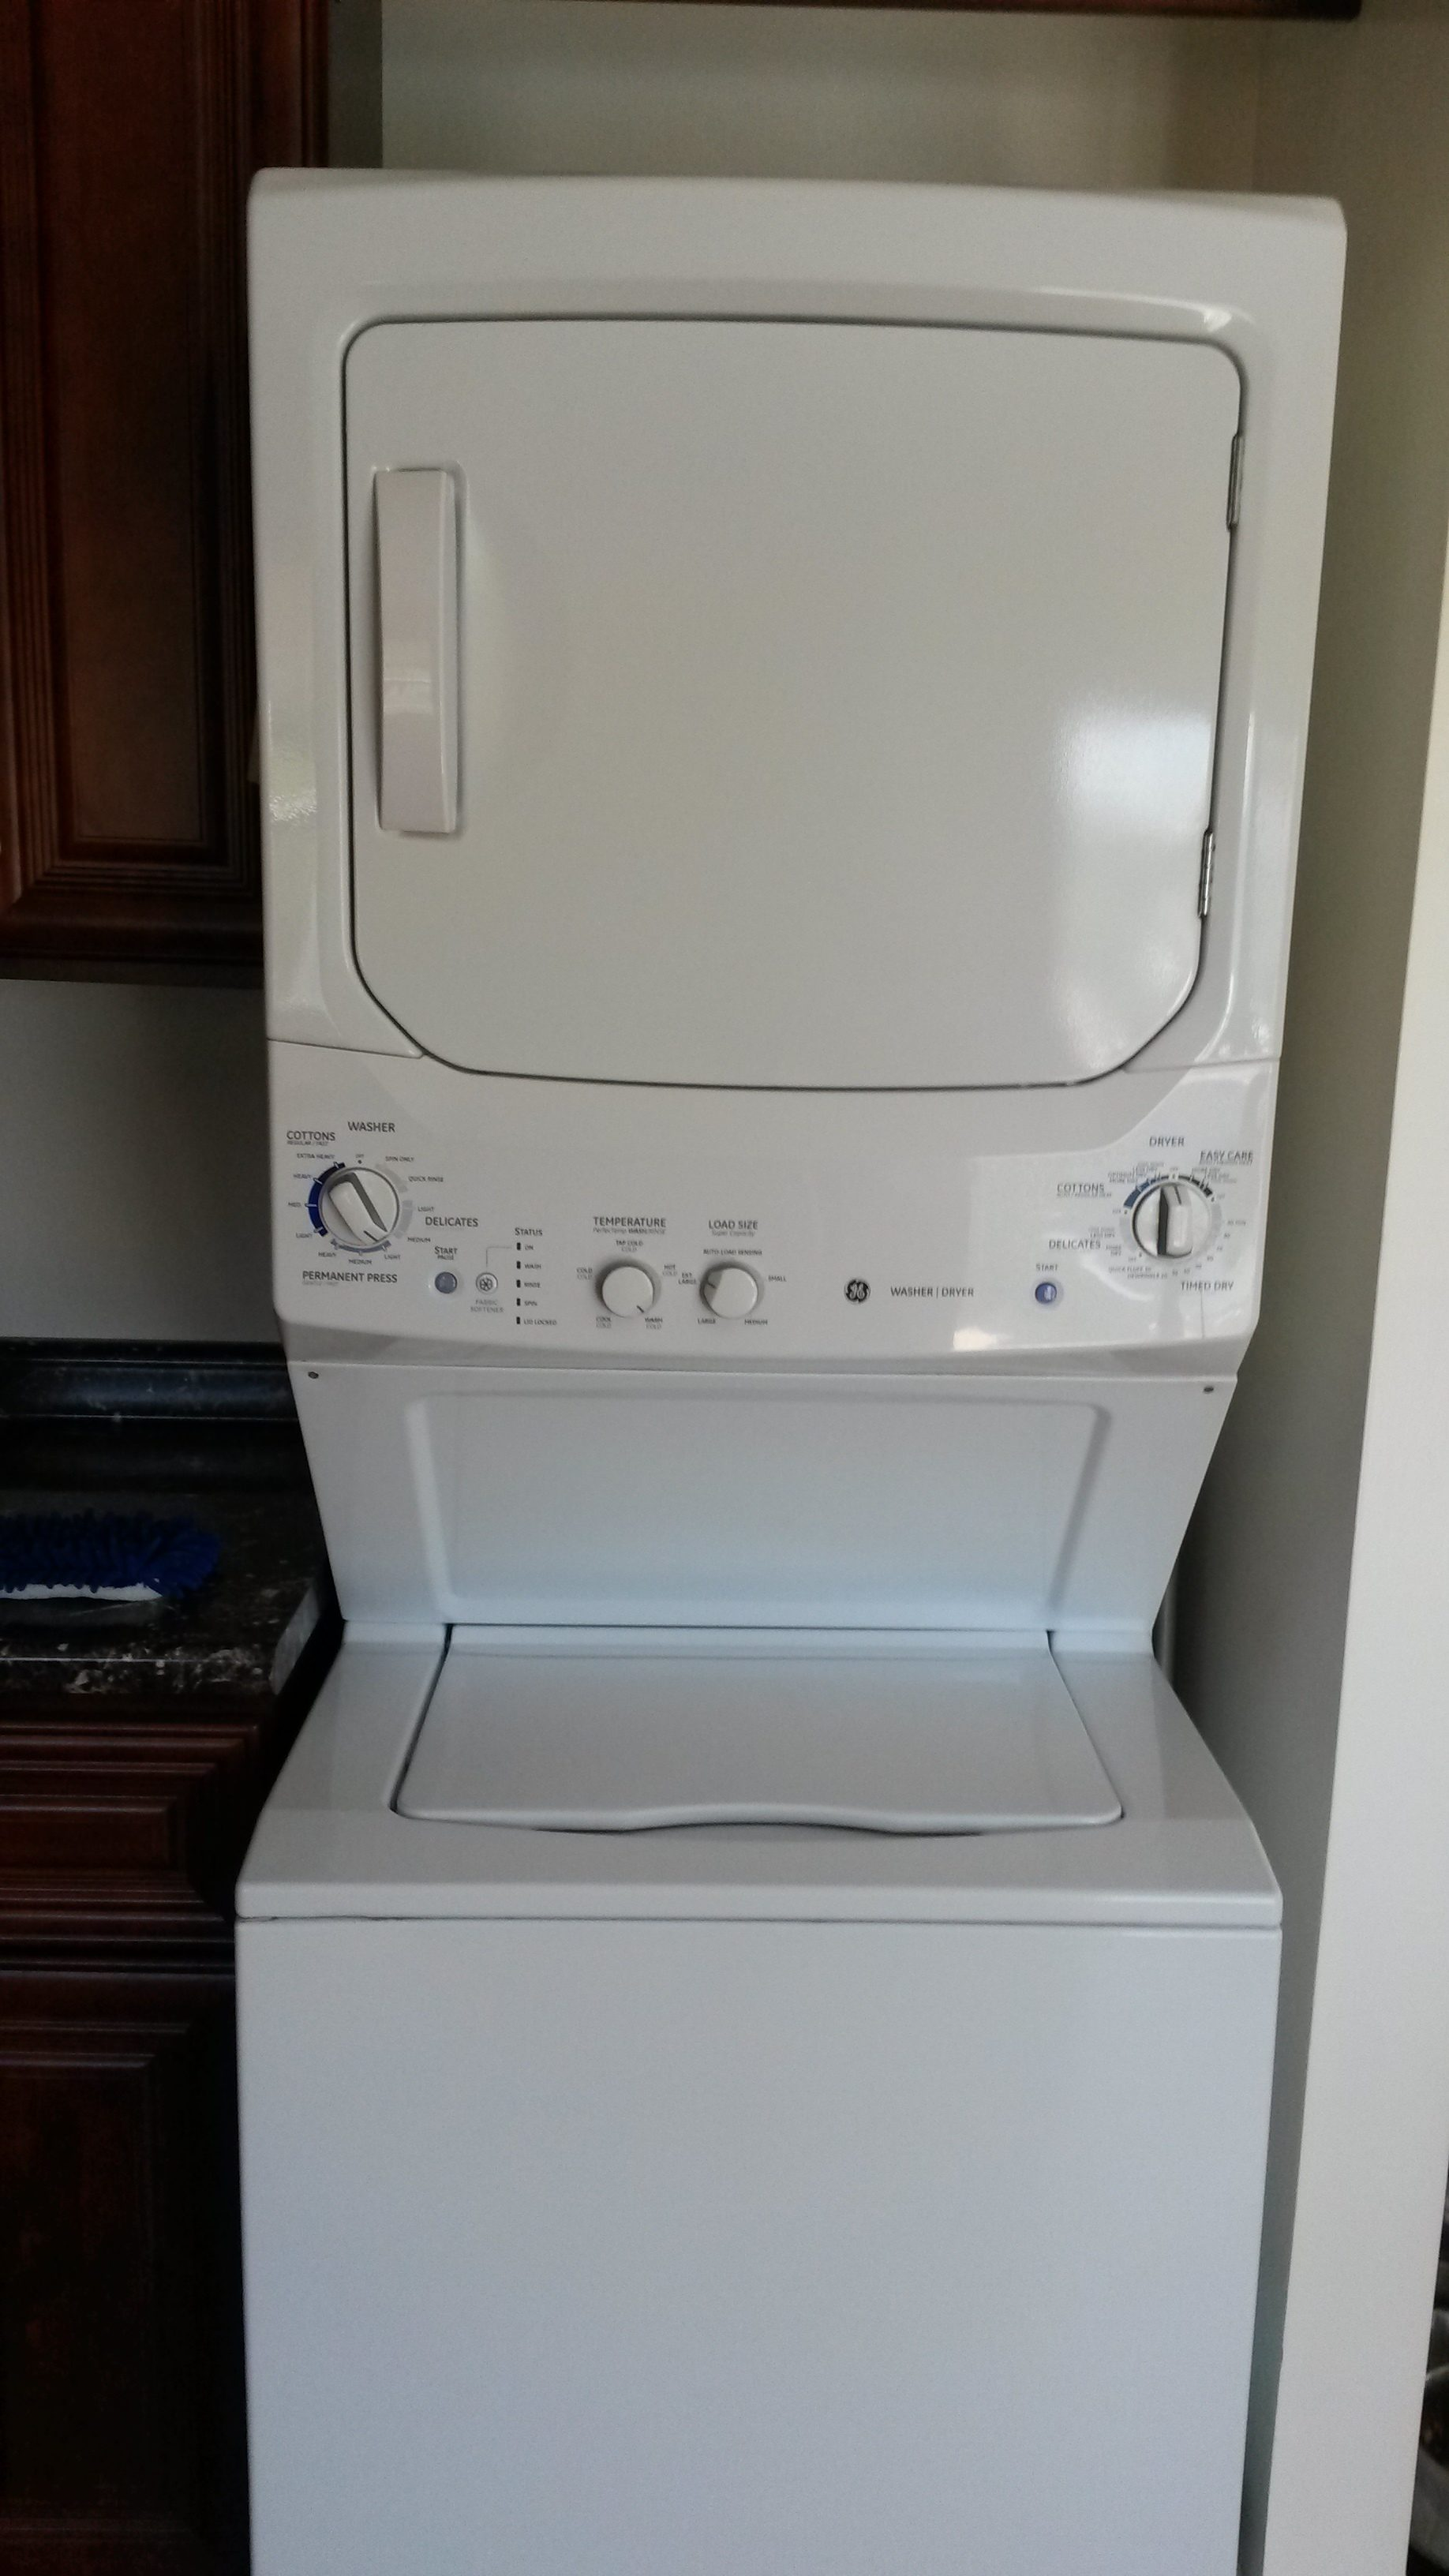 Apartment Size Washers And Dryers - Interior Design